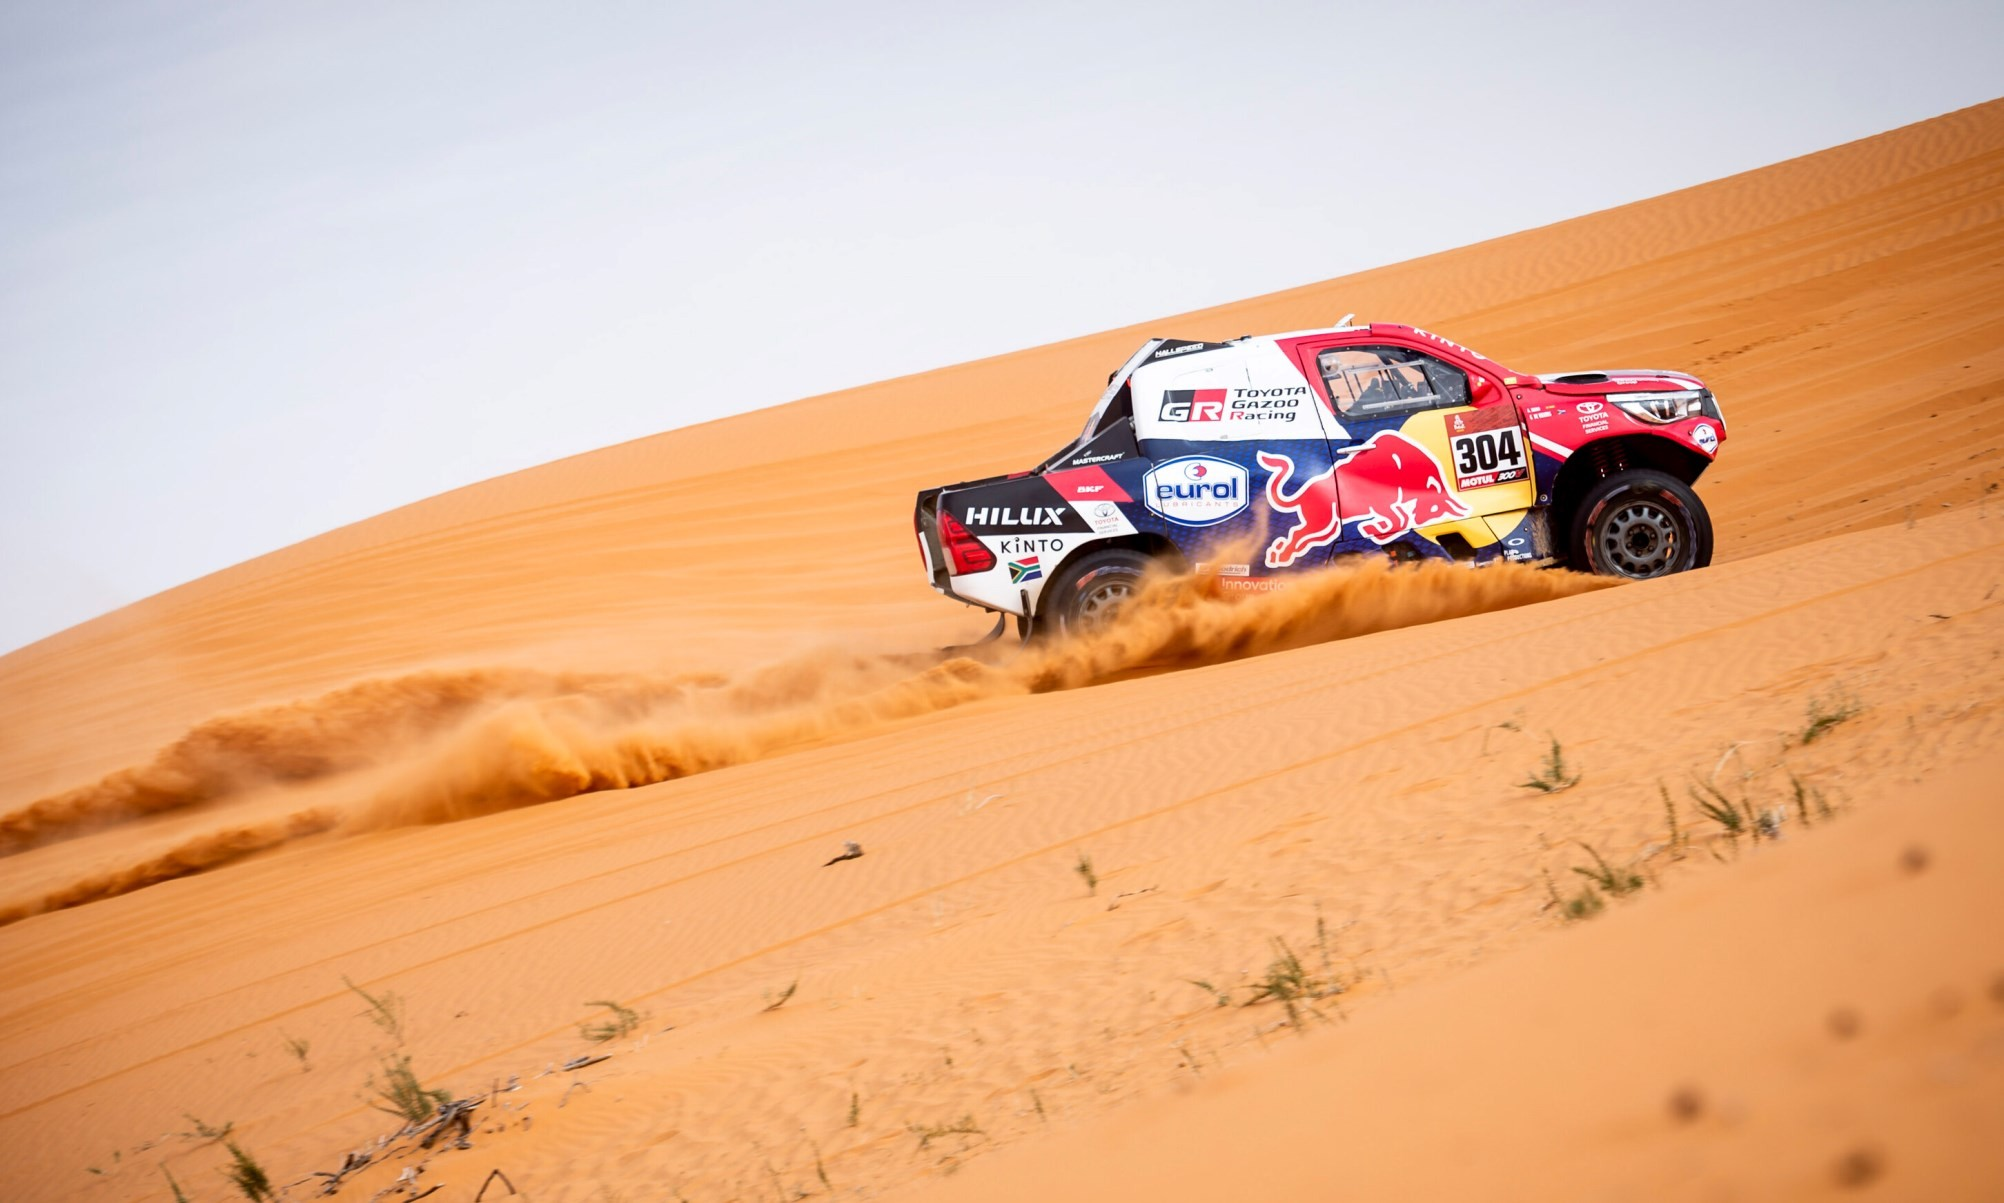 Giniel de Villiers was not quite on the pace on 2020 Dakar Stage 6.